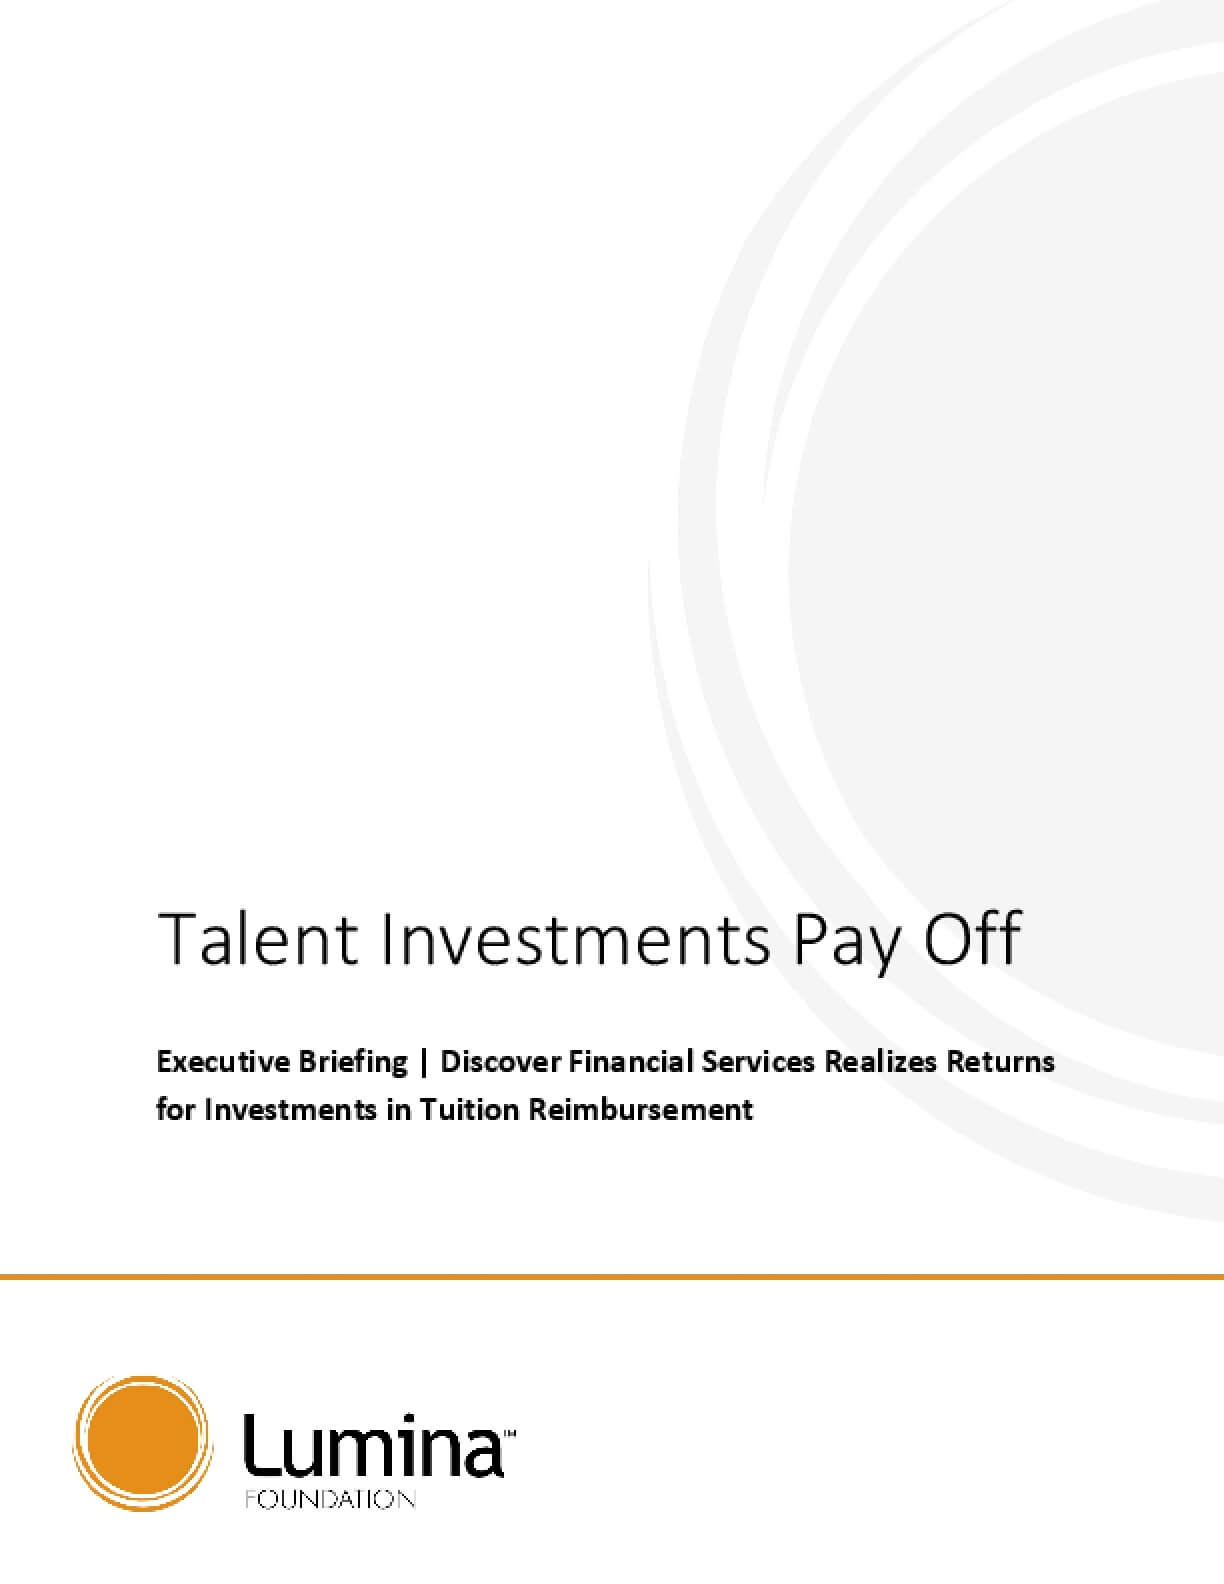 Talent Investments Pay Off: Executive Briefing - Discover Financial Services Realizes Returns for Investments in Tuition Reimbursement